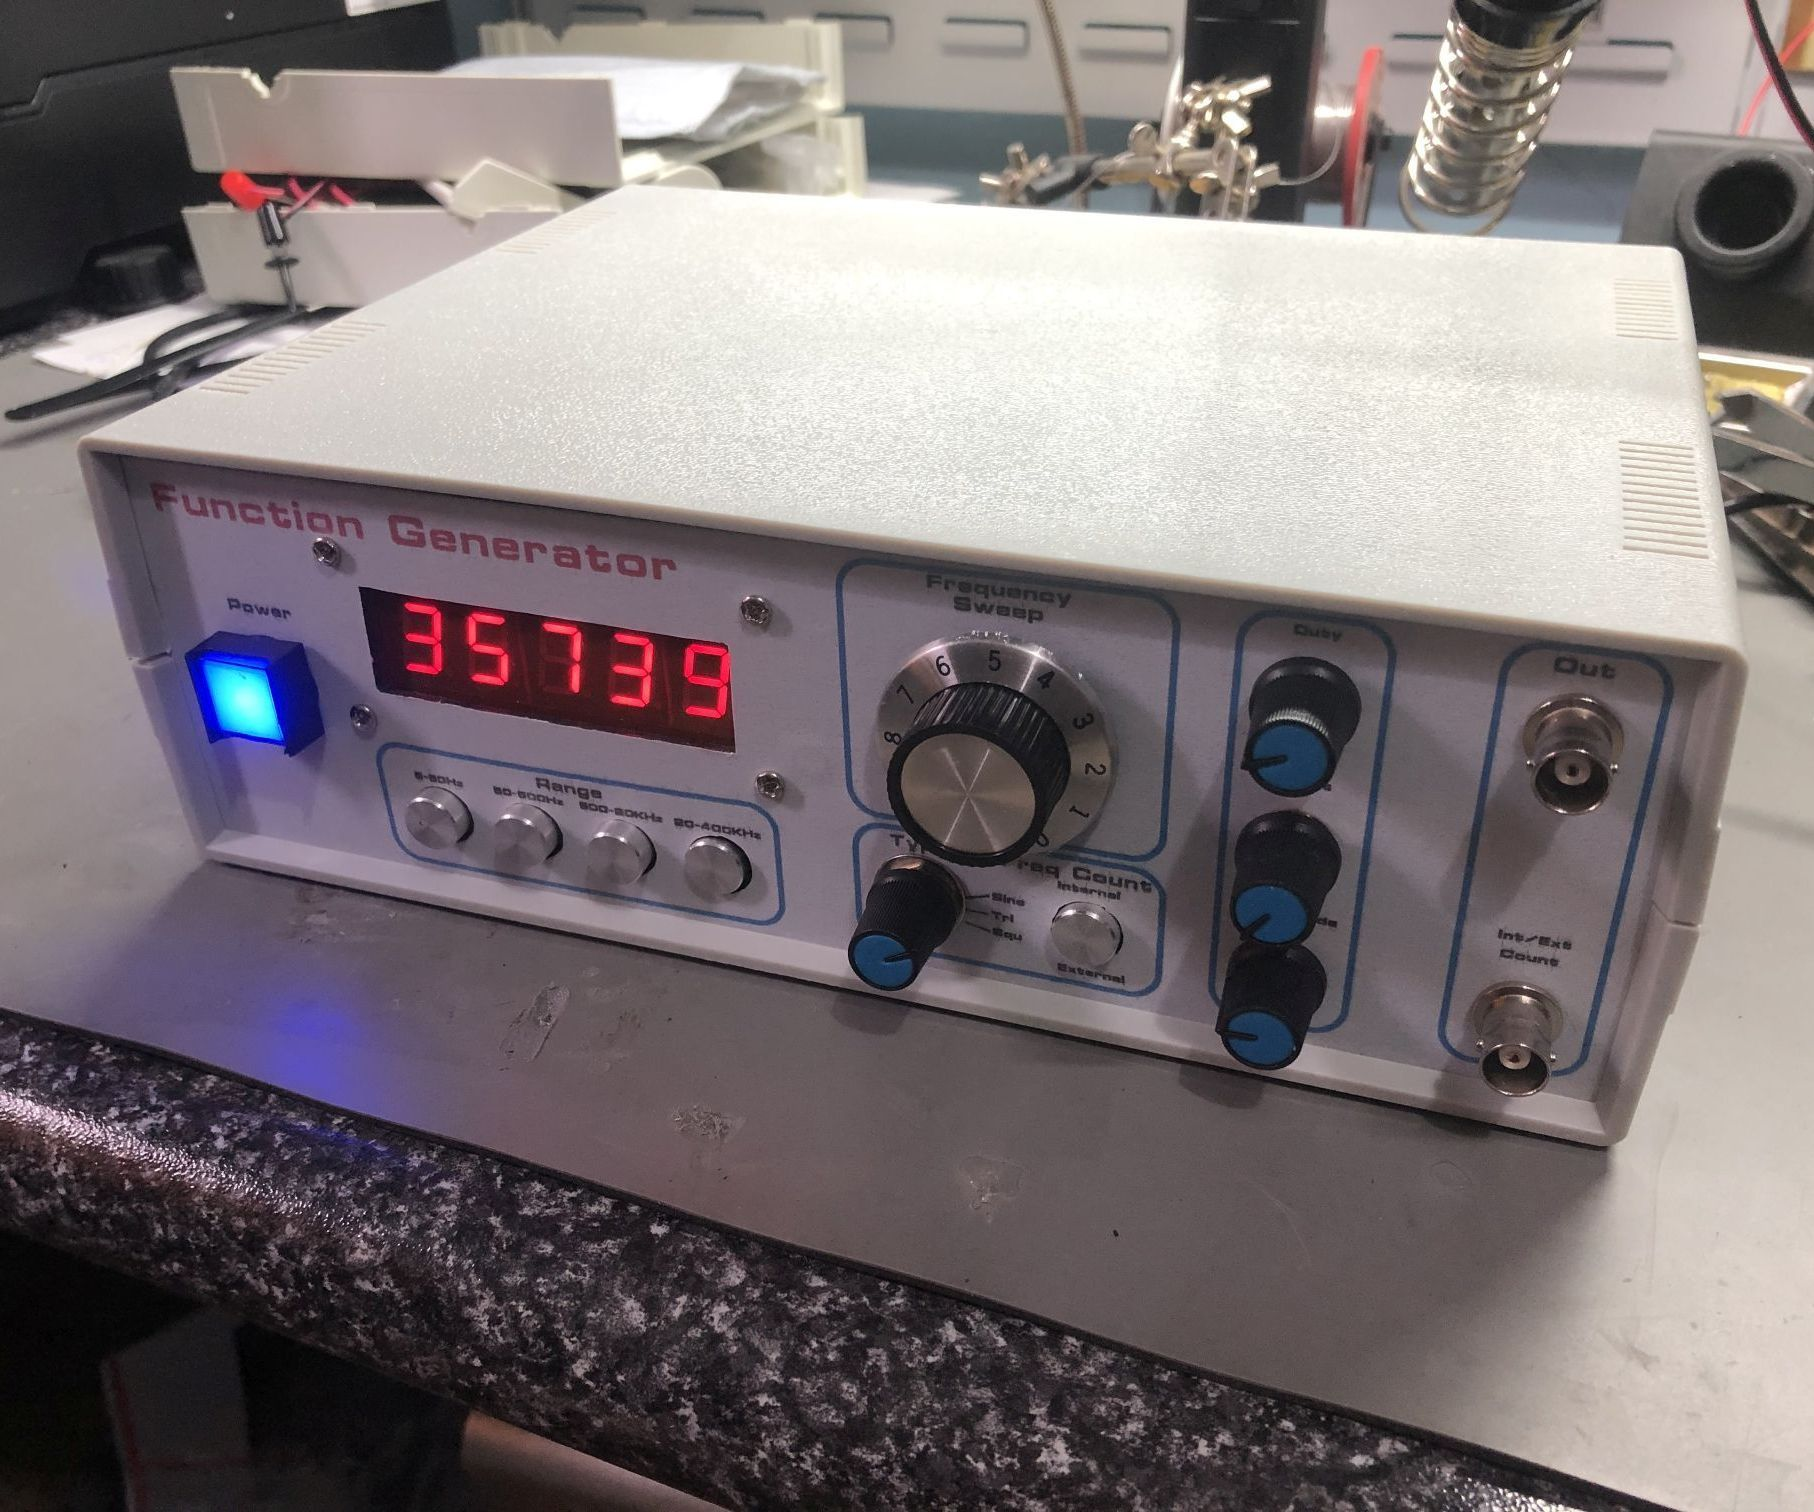 Build This 5Hz to 400KHz LED Sweep Signal Generator From Kits